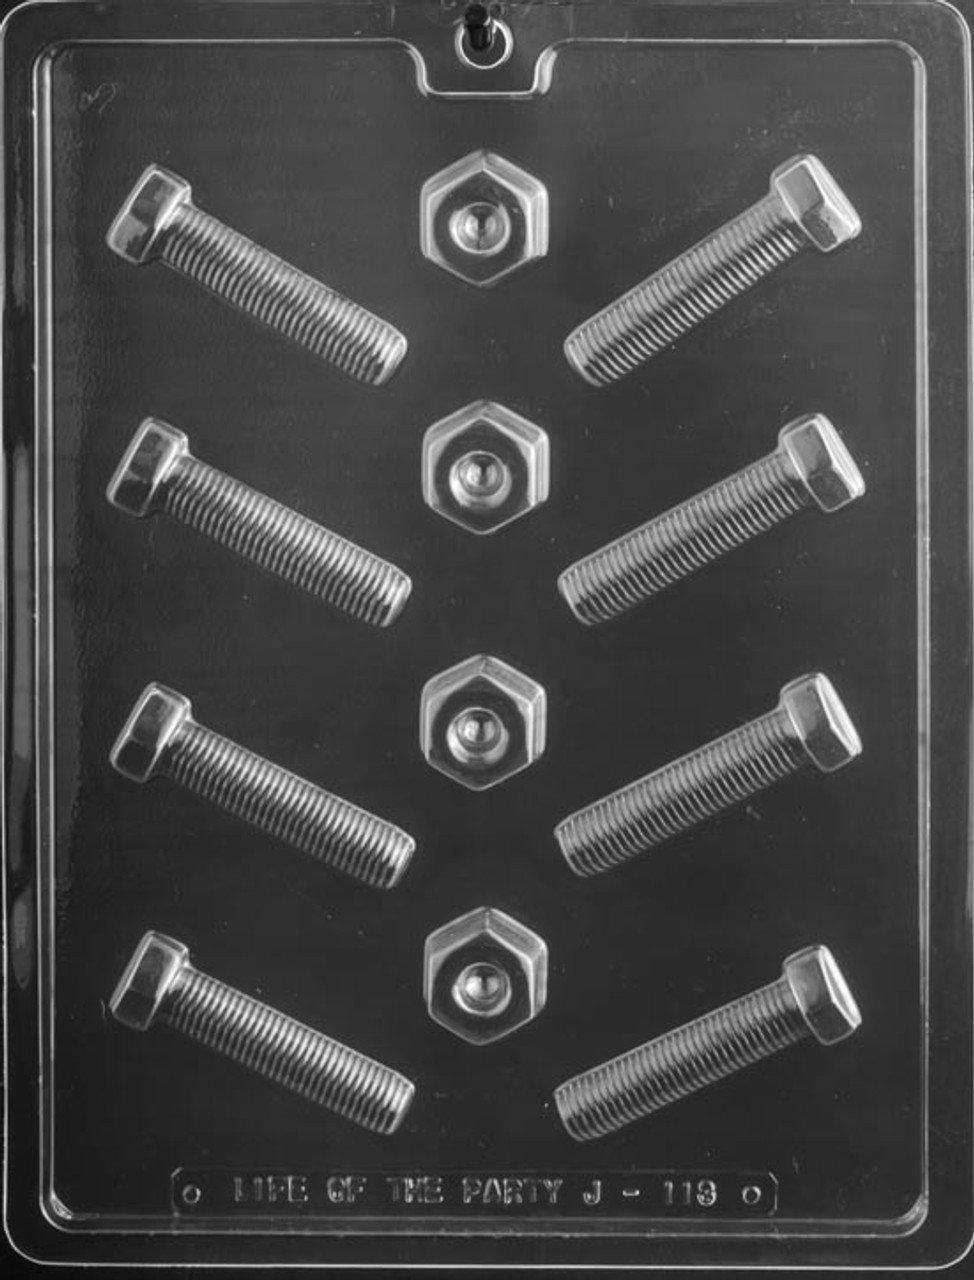 DADS-NUTS AND BOLTS CHOCOLATE CANDY MOLD